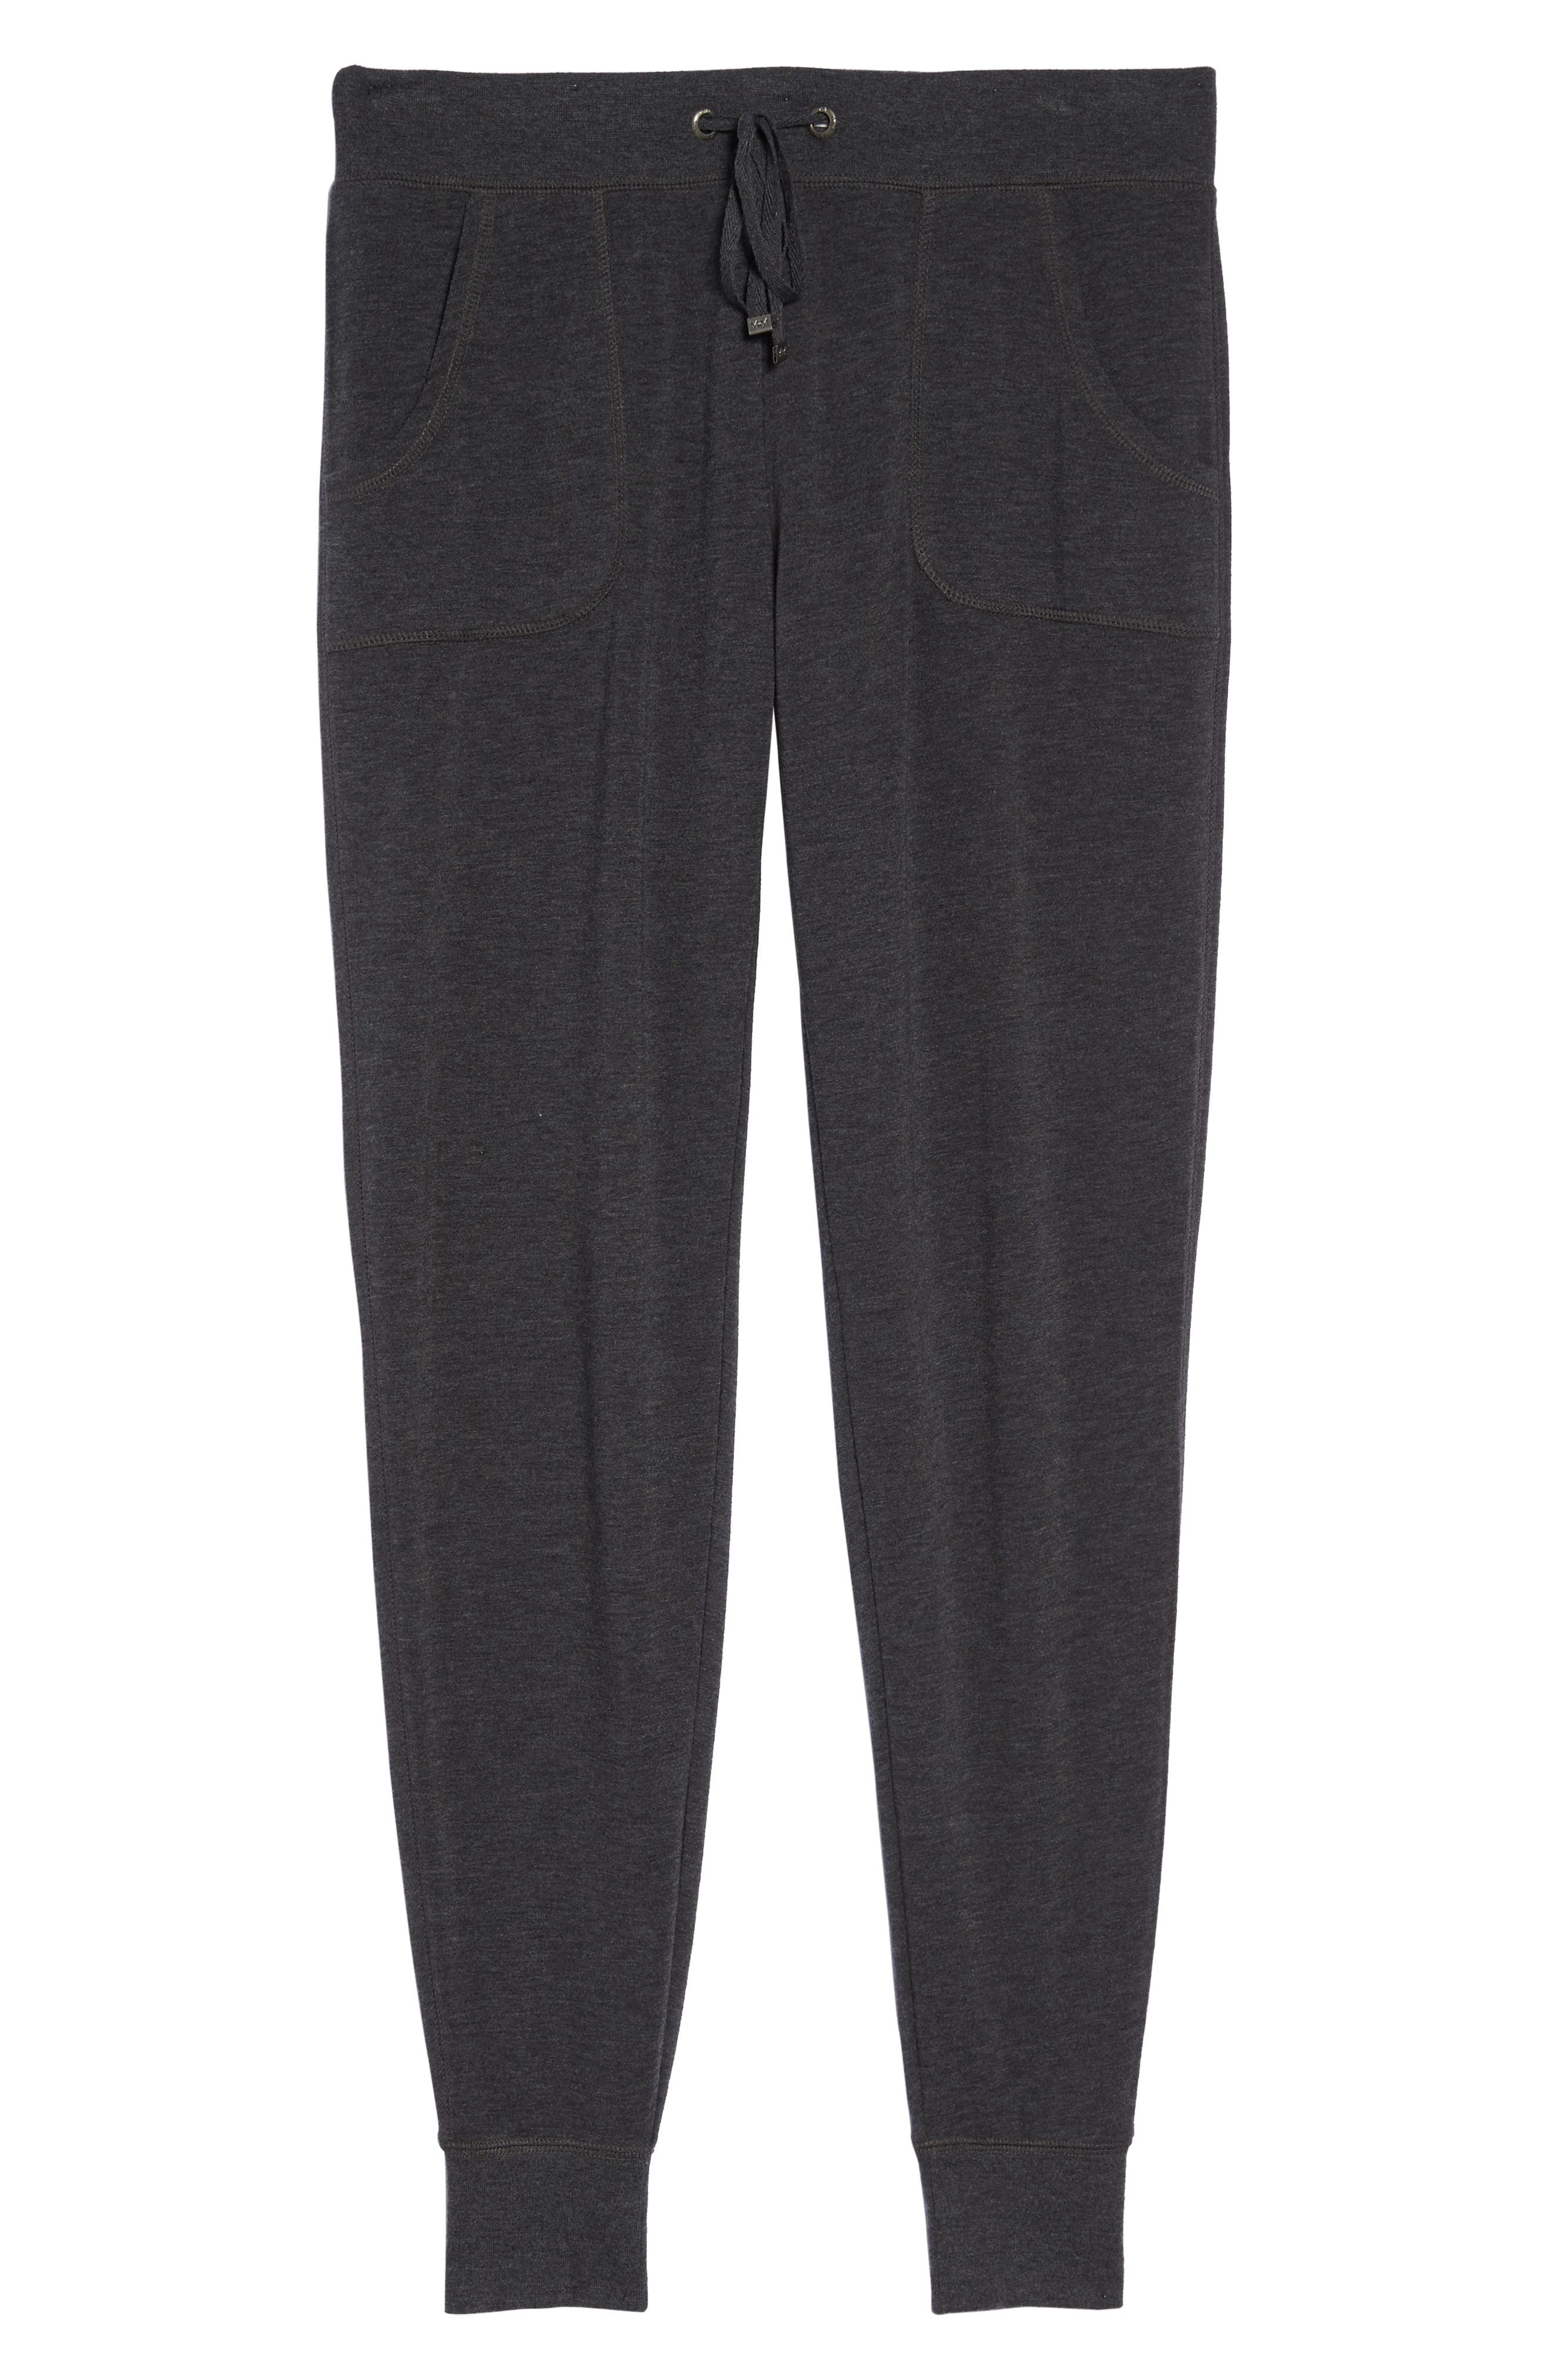 All About It Lounge Pants,                             Alternate thumbnail 7, color,                             Grey Wolf Heather